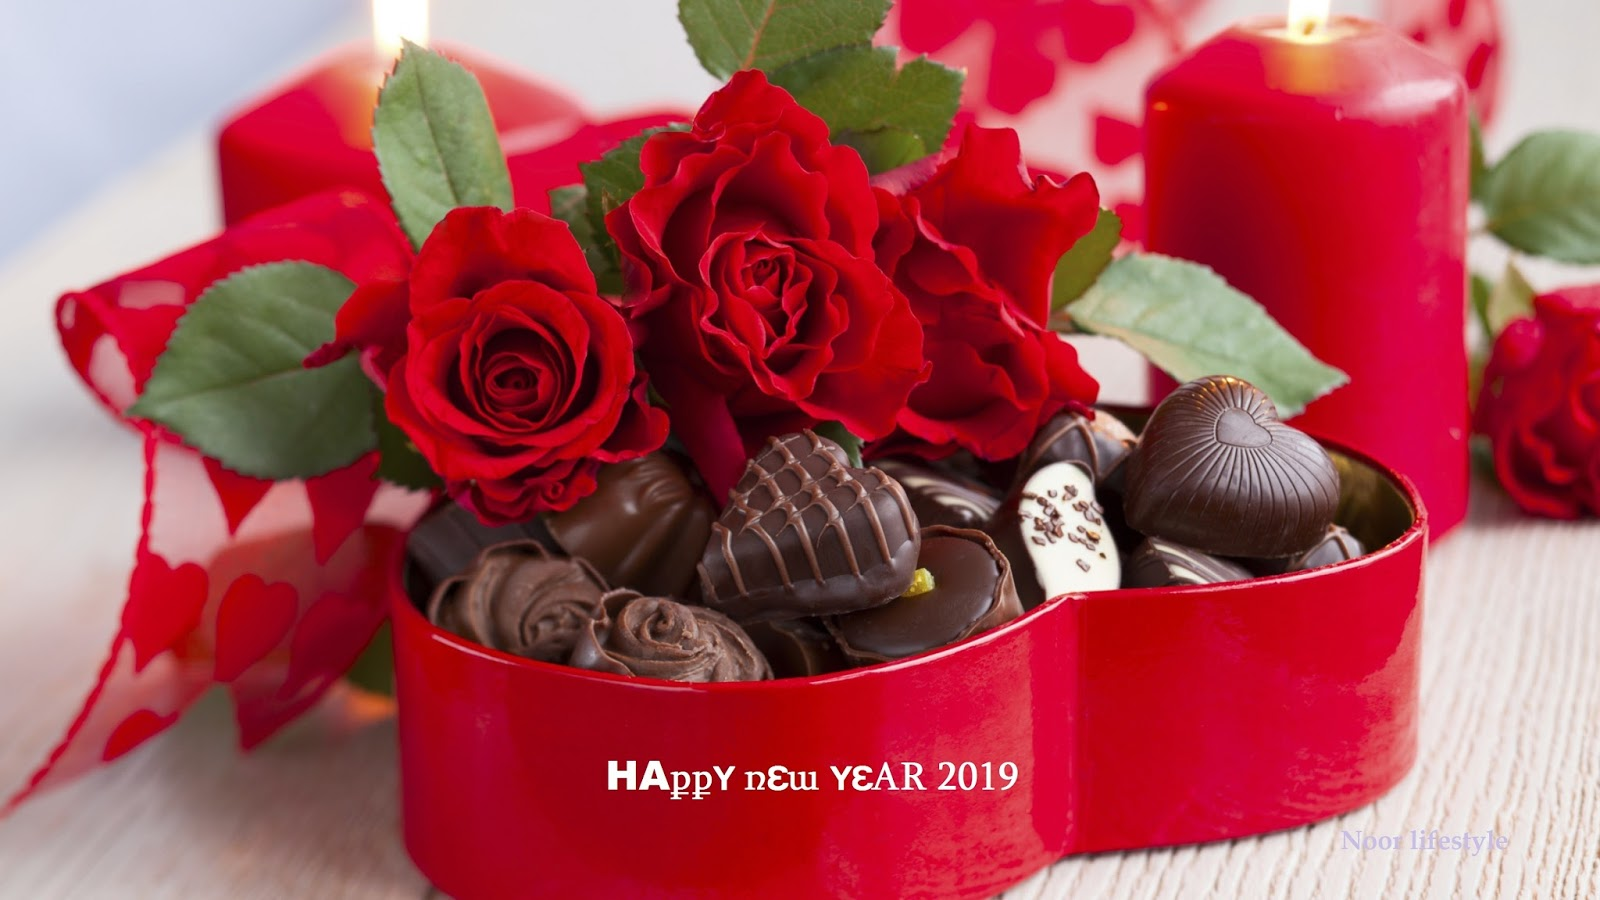 Here Are Some Top Happy New Years Wishes - Rose Valentine Day Gift , HD Wallpaper & Backgrounds